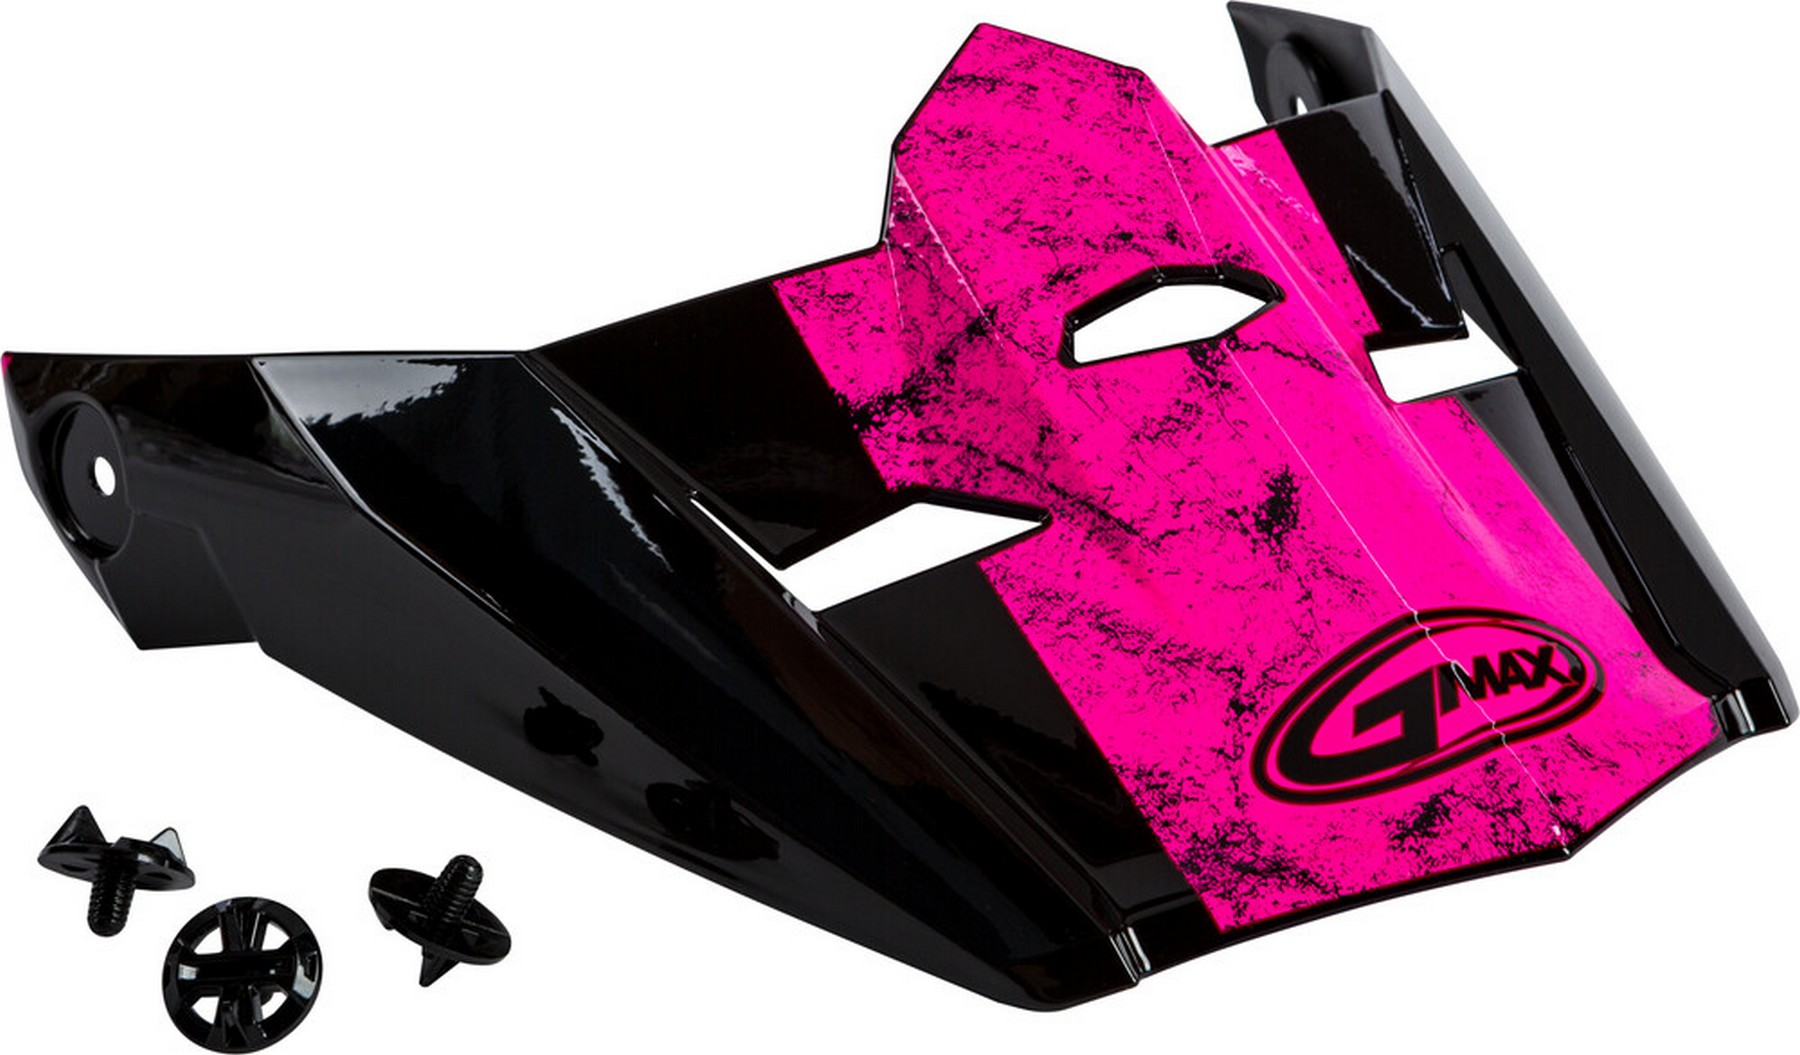 GMAX MX-46 Uncle Replacement Visor Black//Pink